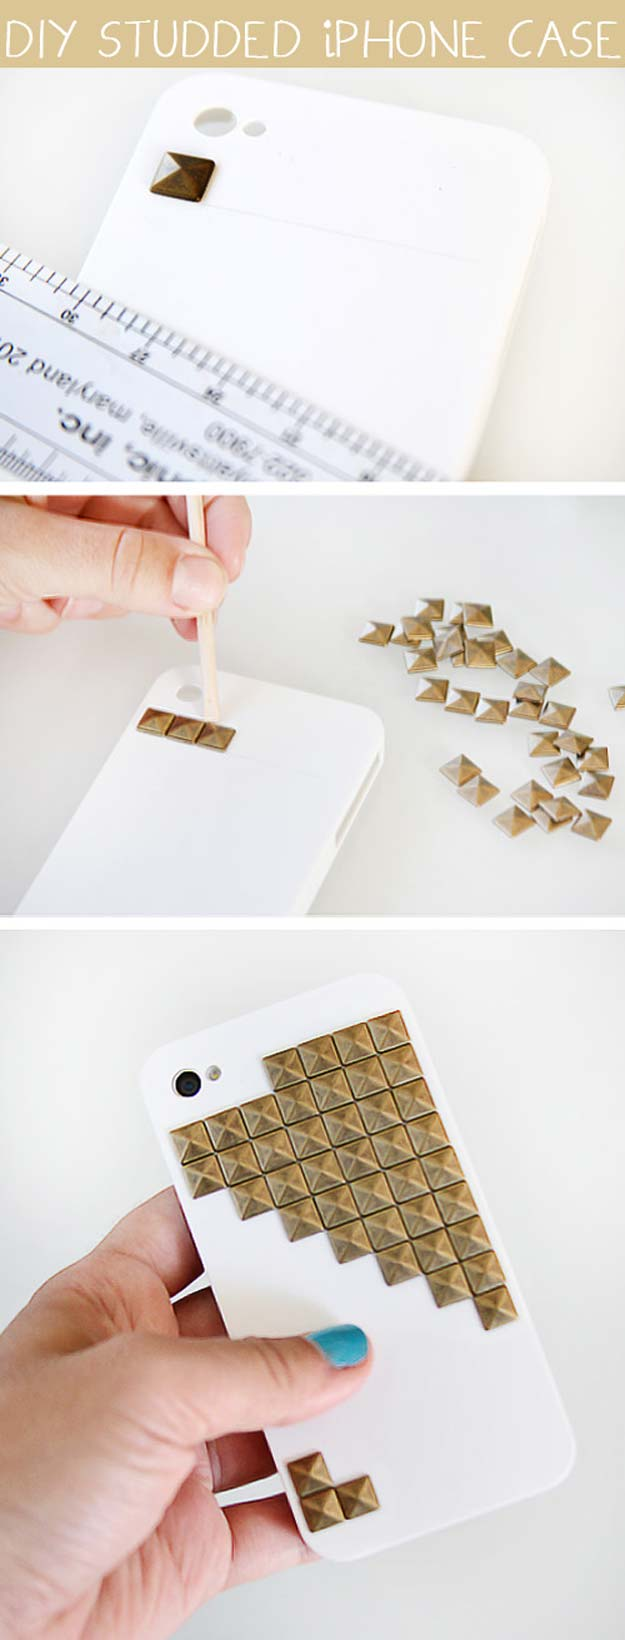 iphone-cover-